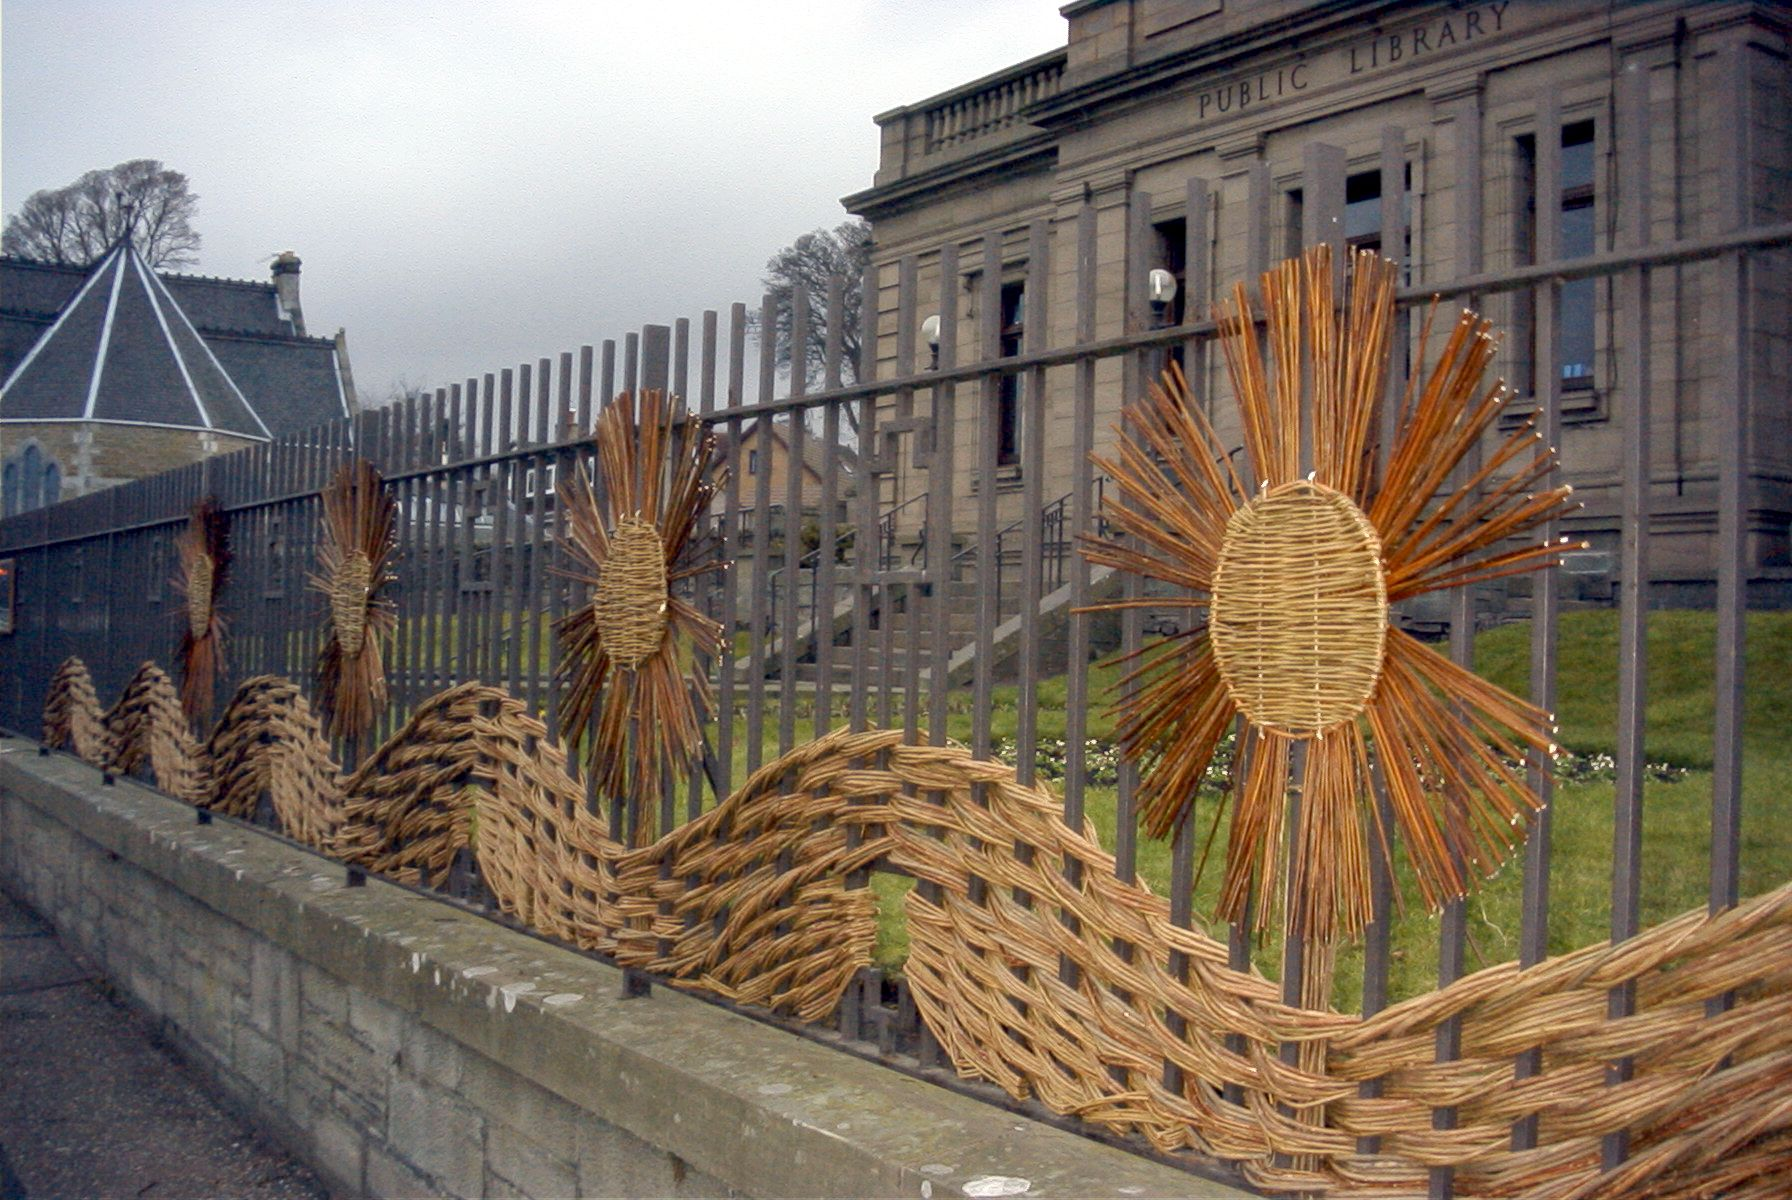 Library railings, Broughty Ferry